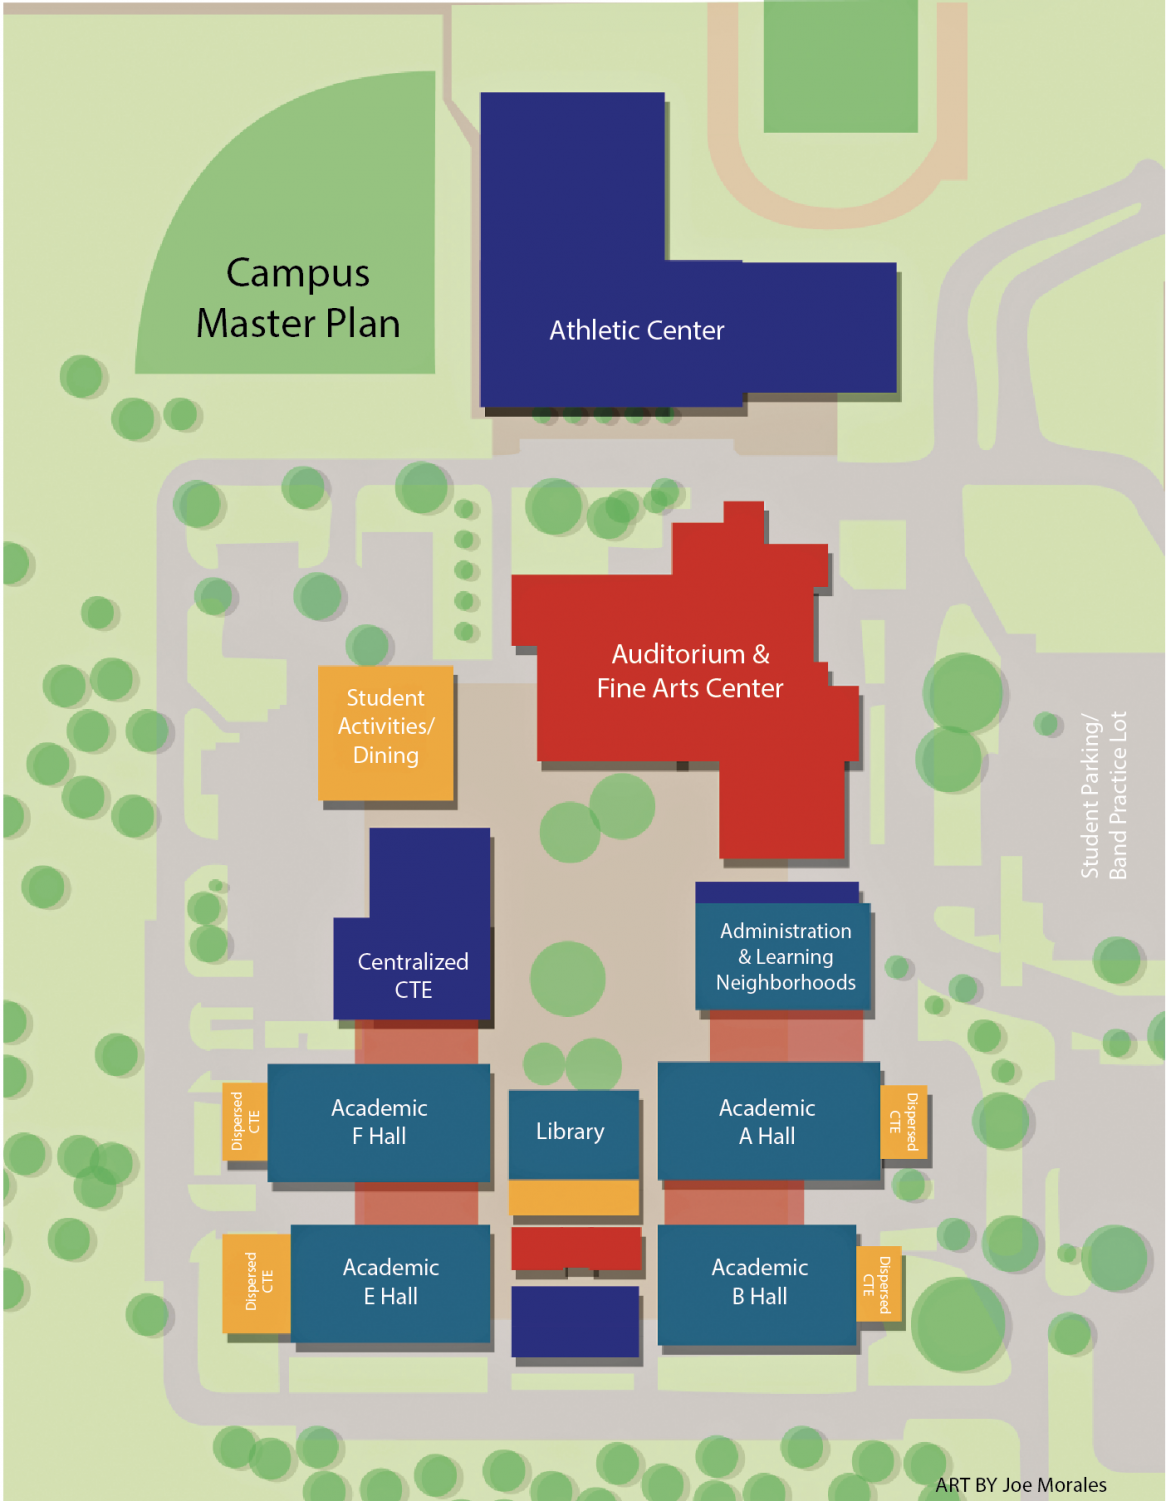 The future of the school has been altered. No longer will its students recognize it for its extensive traffic and outdated facilities. With the initiation of the 2017 bond, the campus was included based on one thing: capacity needs.